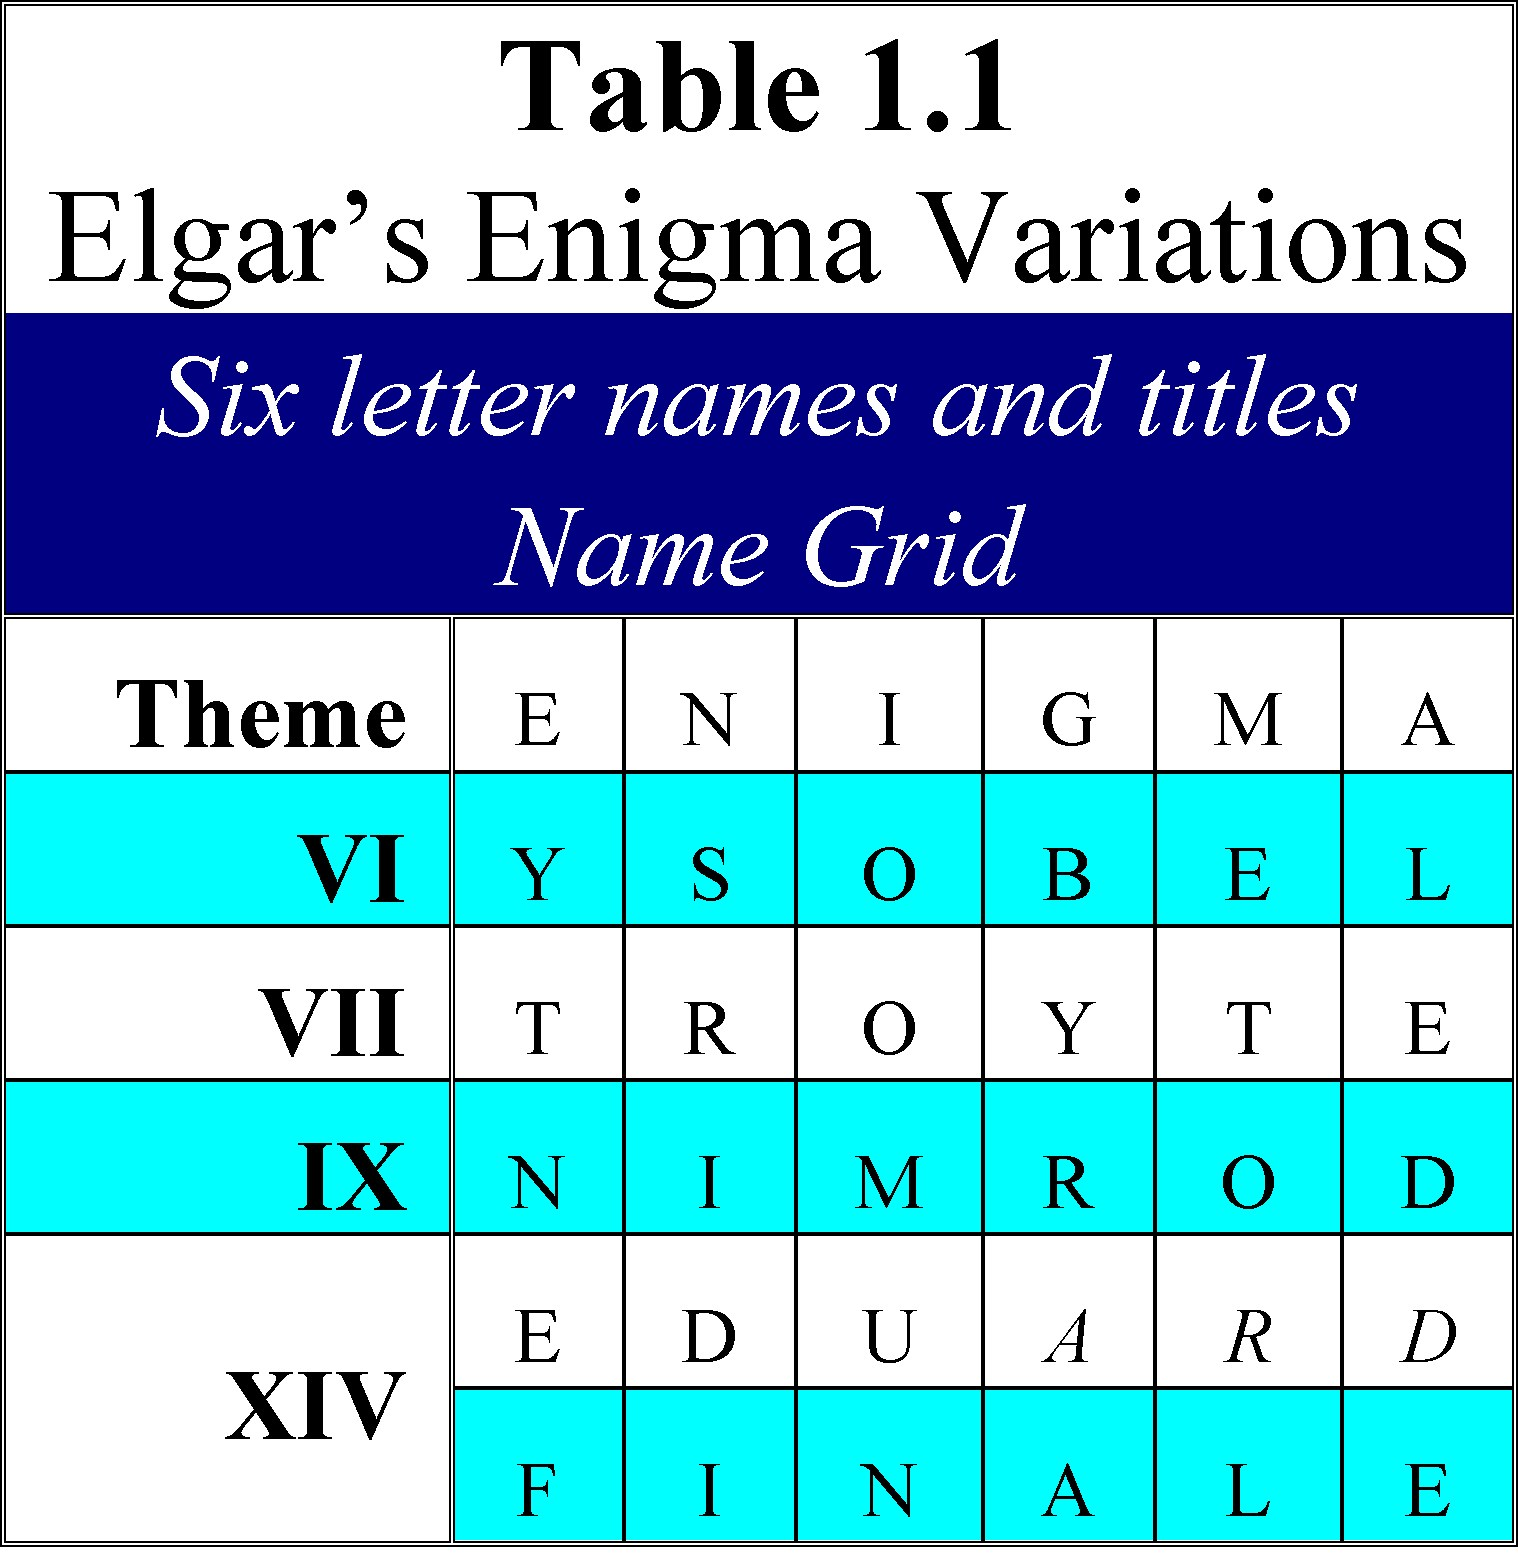 ... Enigma Theme Unmasked: Six 6-Letter Names and Elgar's 6 x 6 Box Cipher